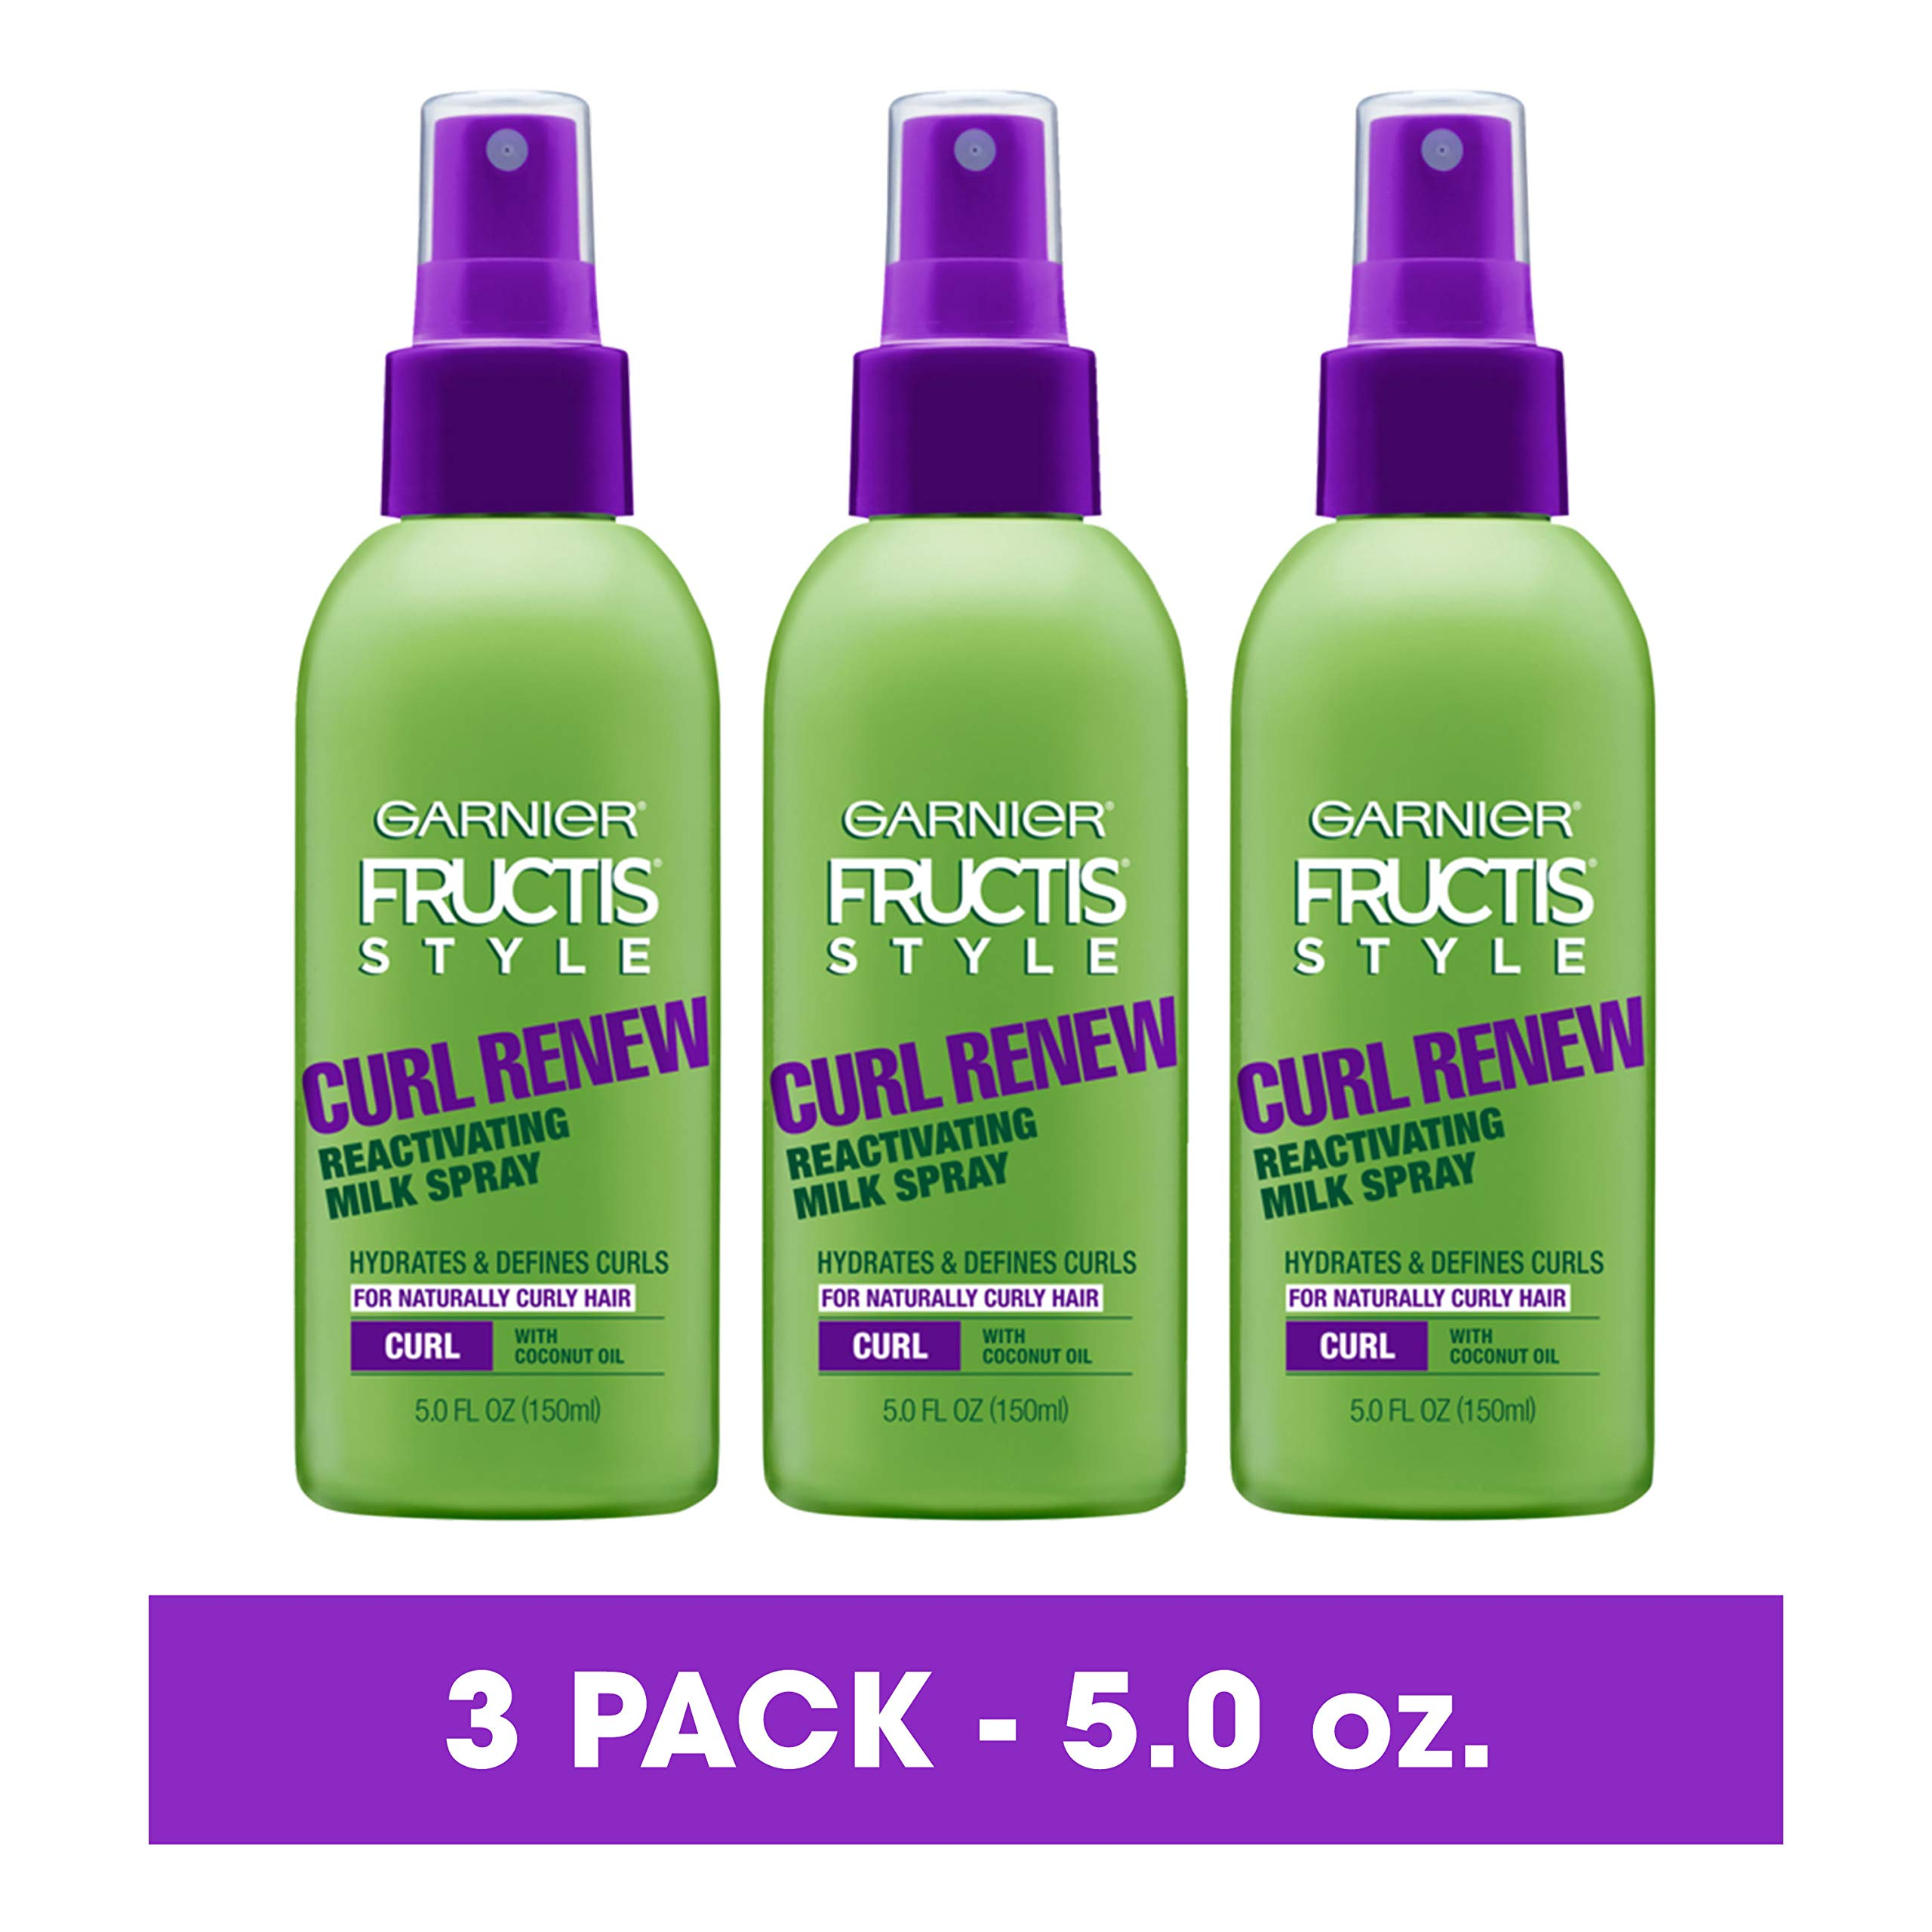 Garnier Fructis Style Curl Renew Reactivating Milk Spray For Curly Hair, 5 Ounce (Pack of 3) (Packaging May Vary) by Garnier